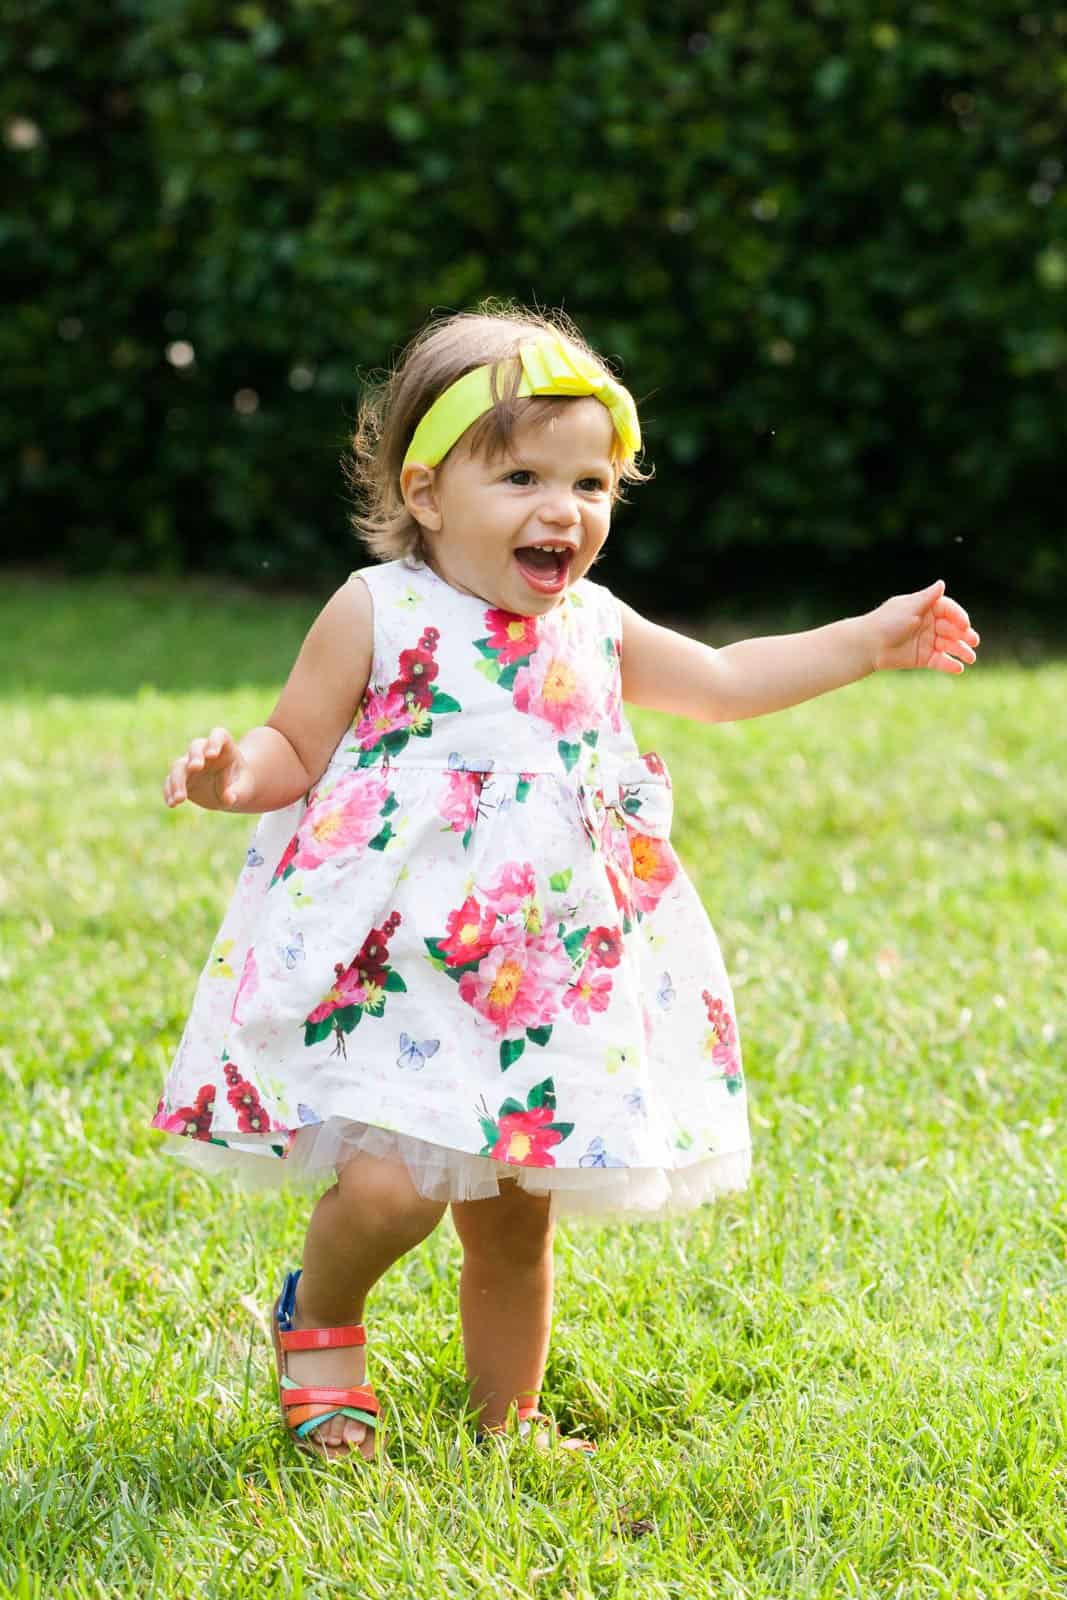 young girl in flower dress and yellow headband